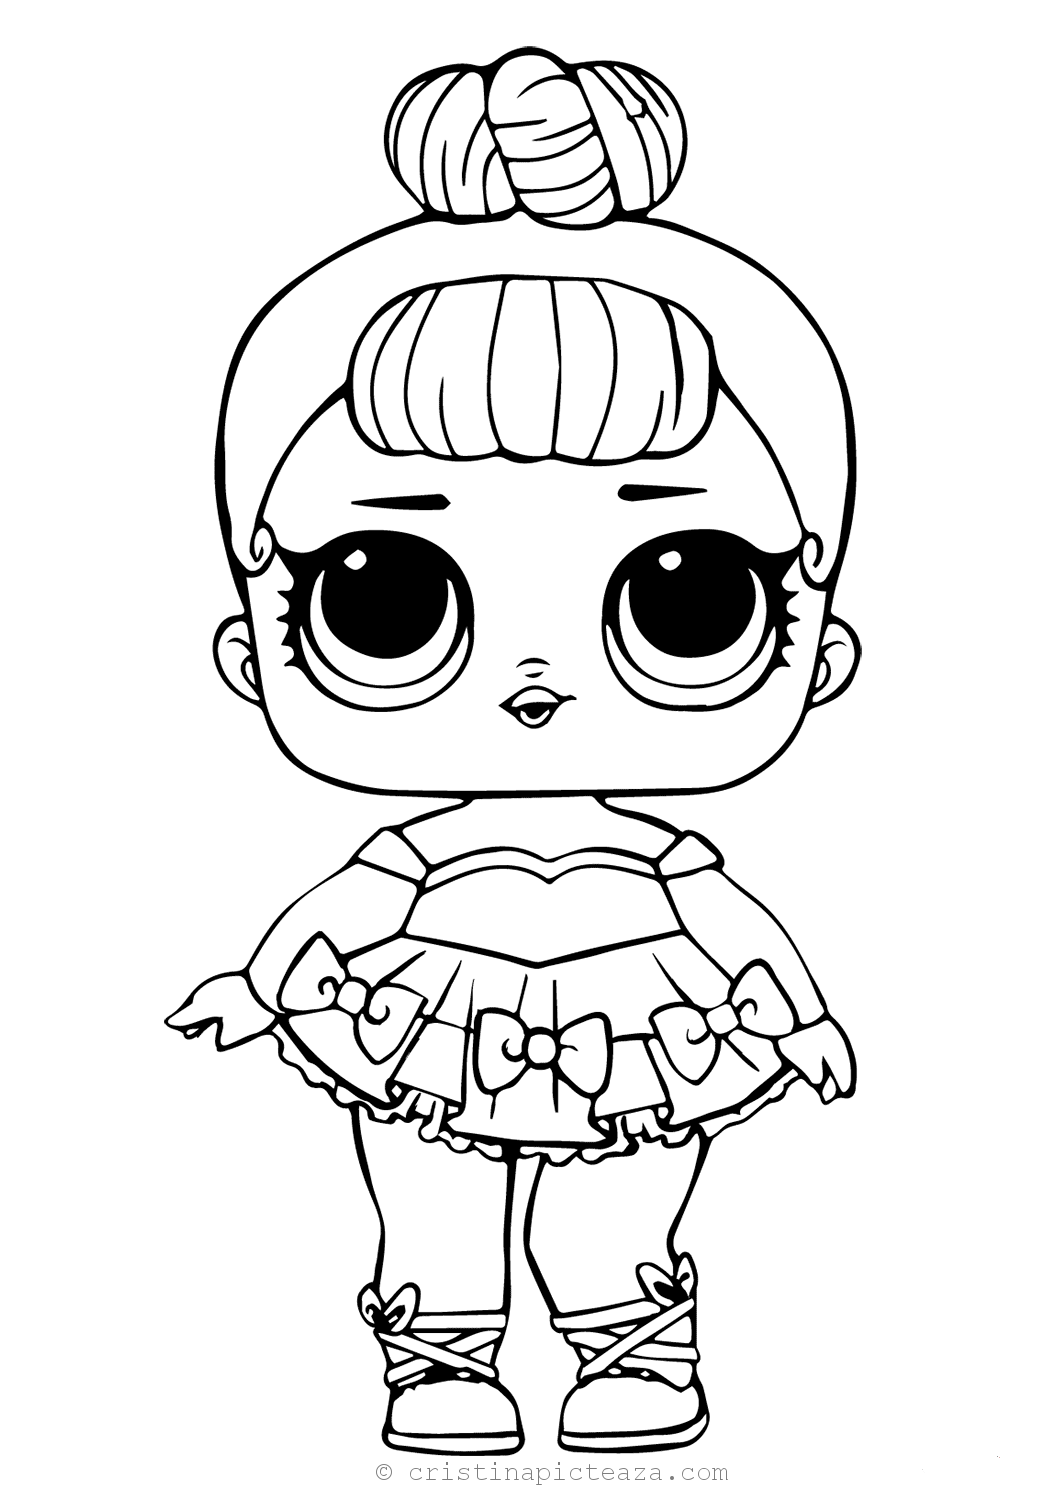 doll colouring pages lol coloring pages lol dolls for coloring and painting colouring doll pages